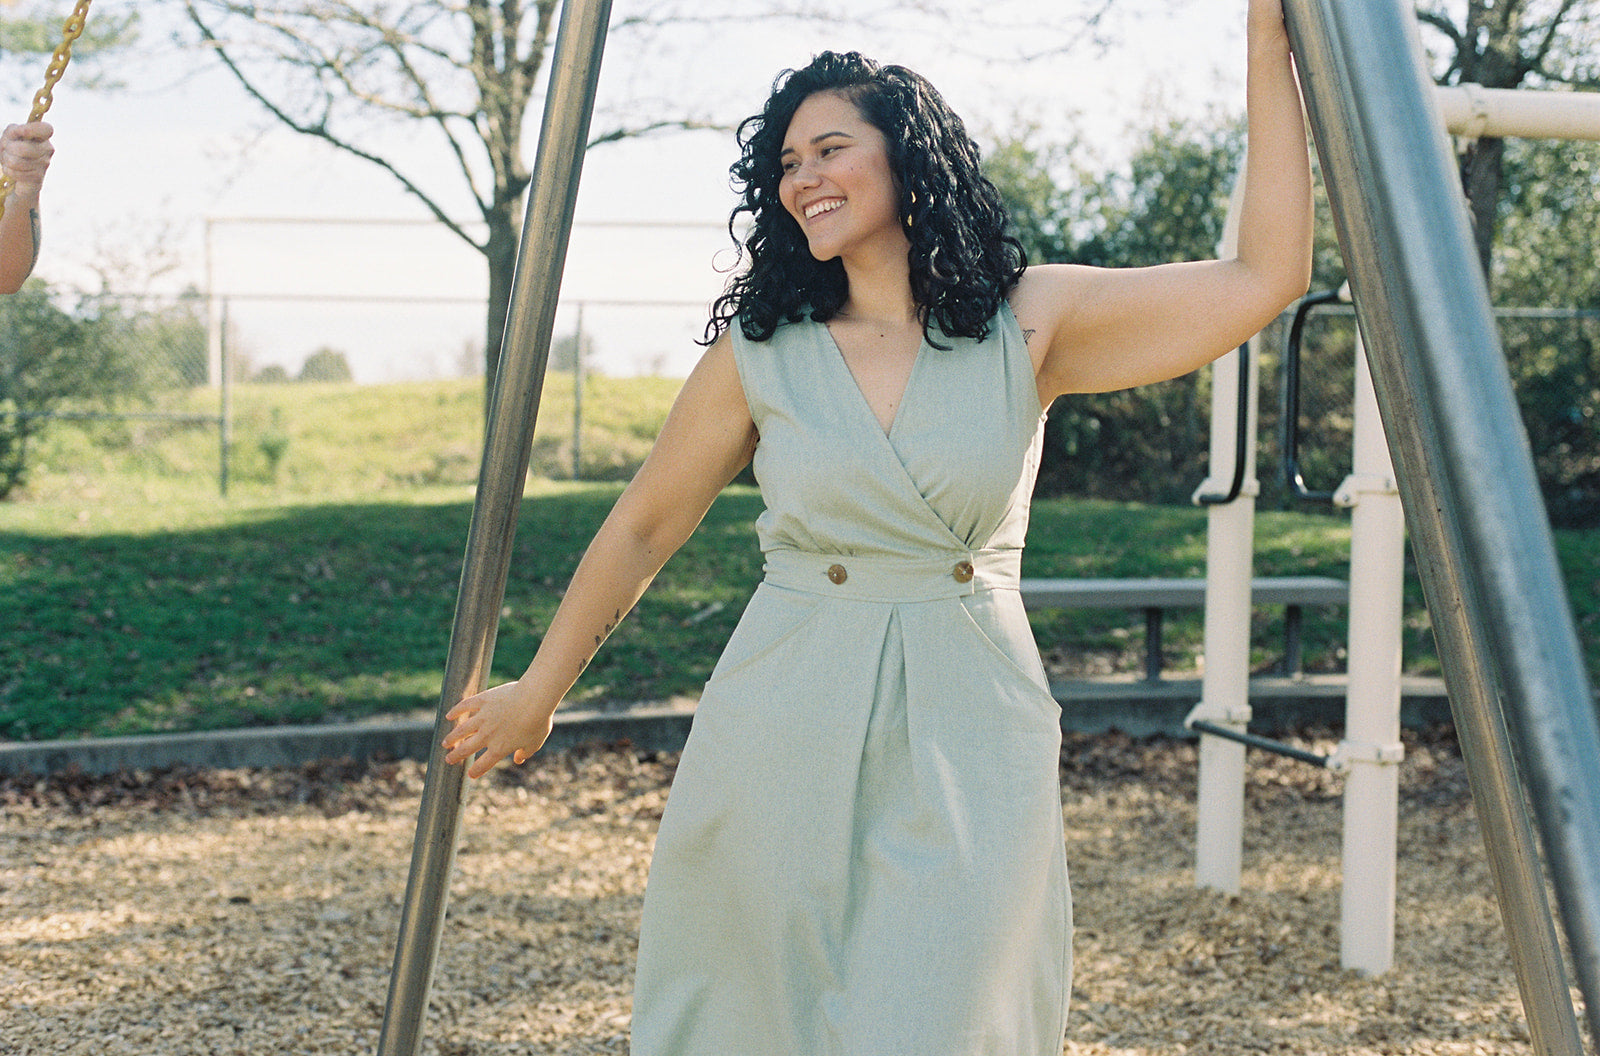 plus size model wearing a dress with pockets